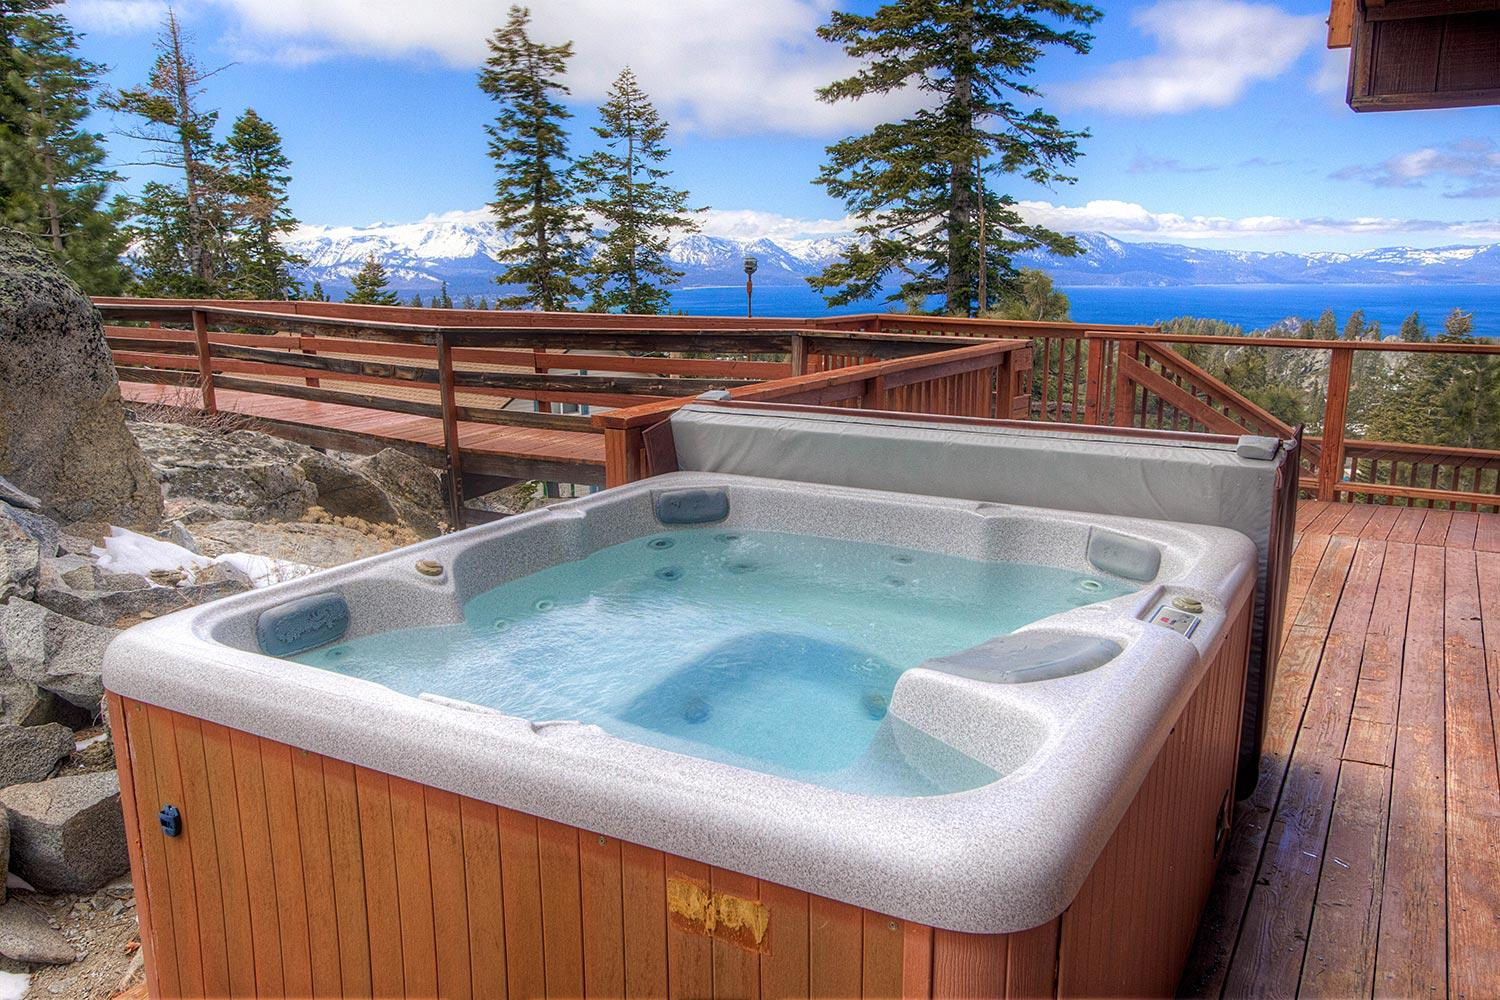 hnc0693 hot tub